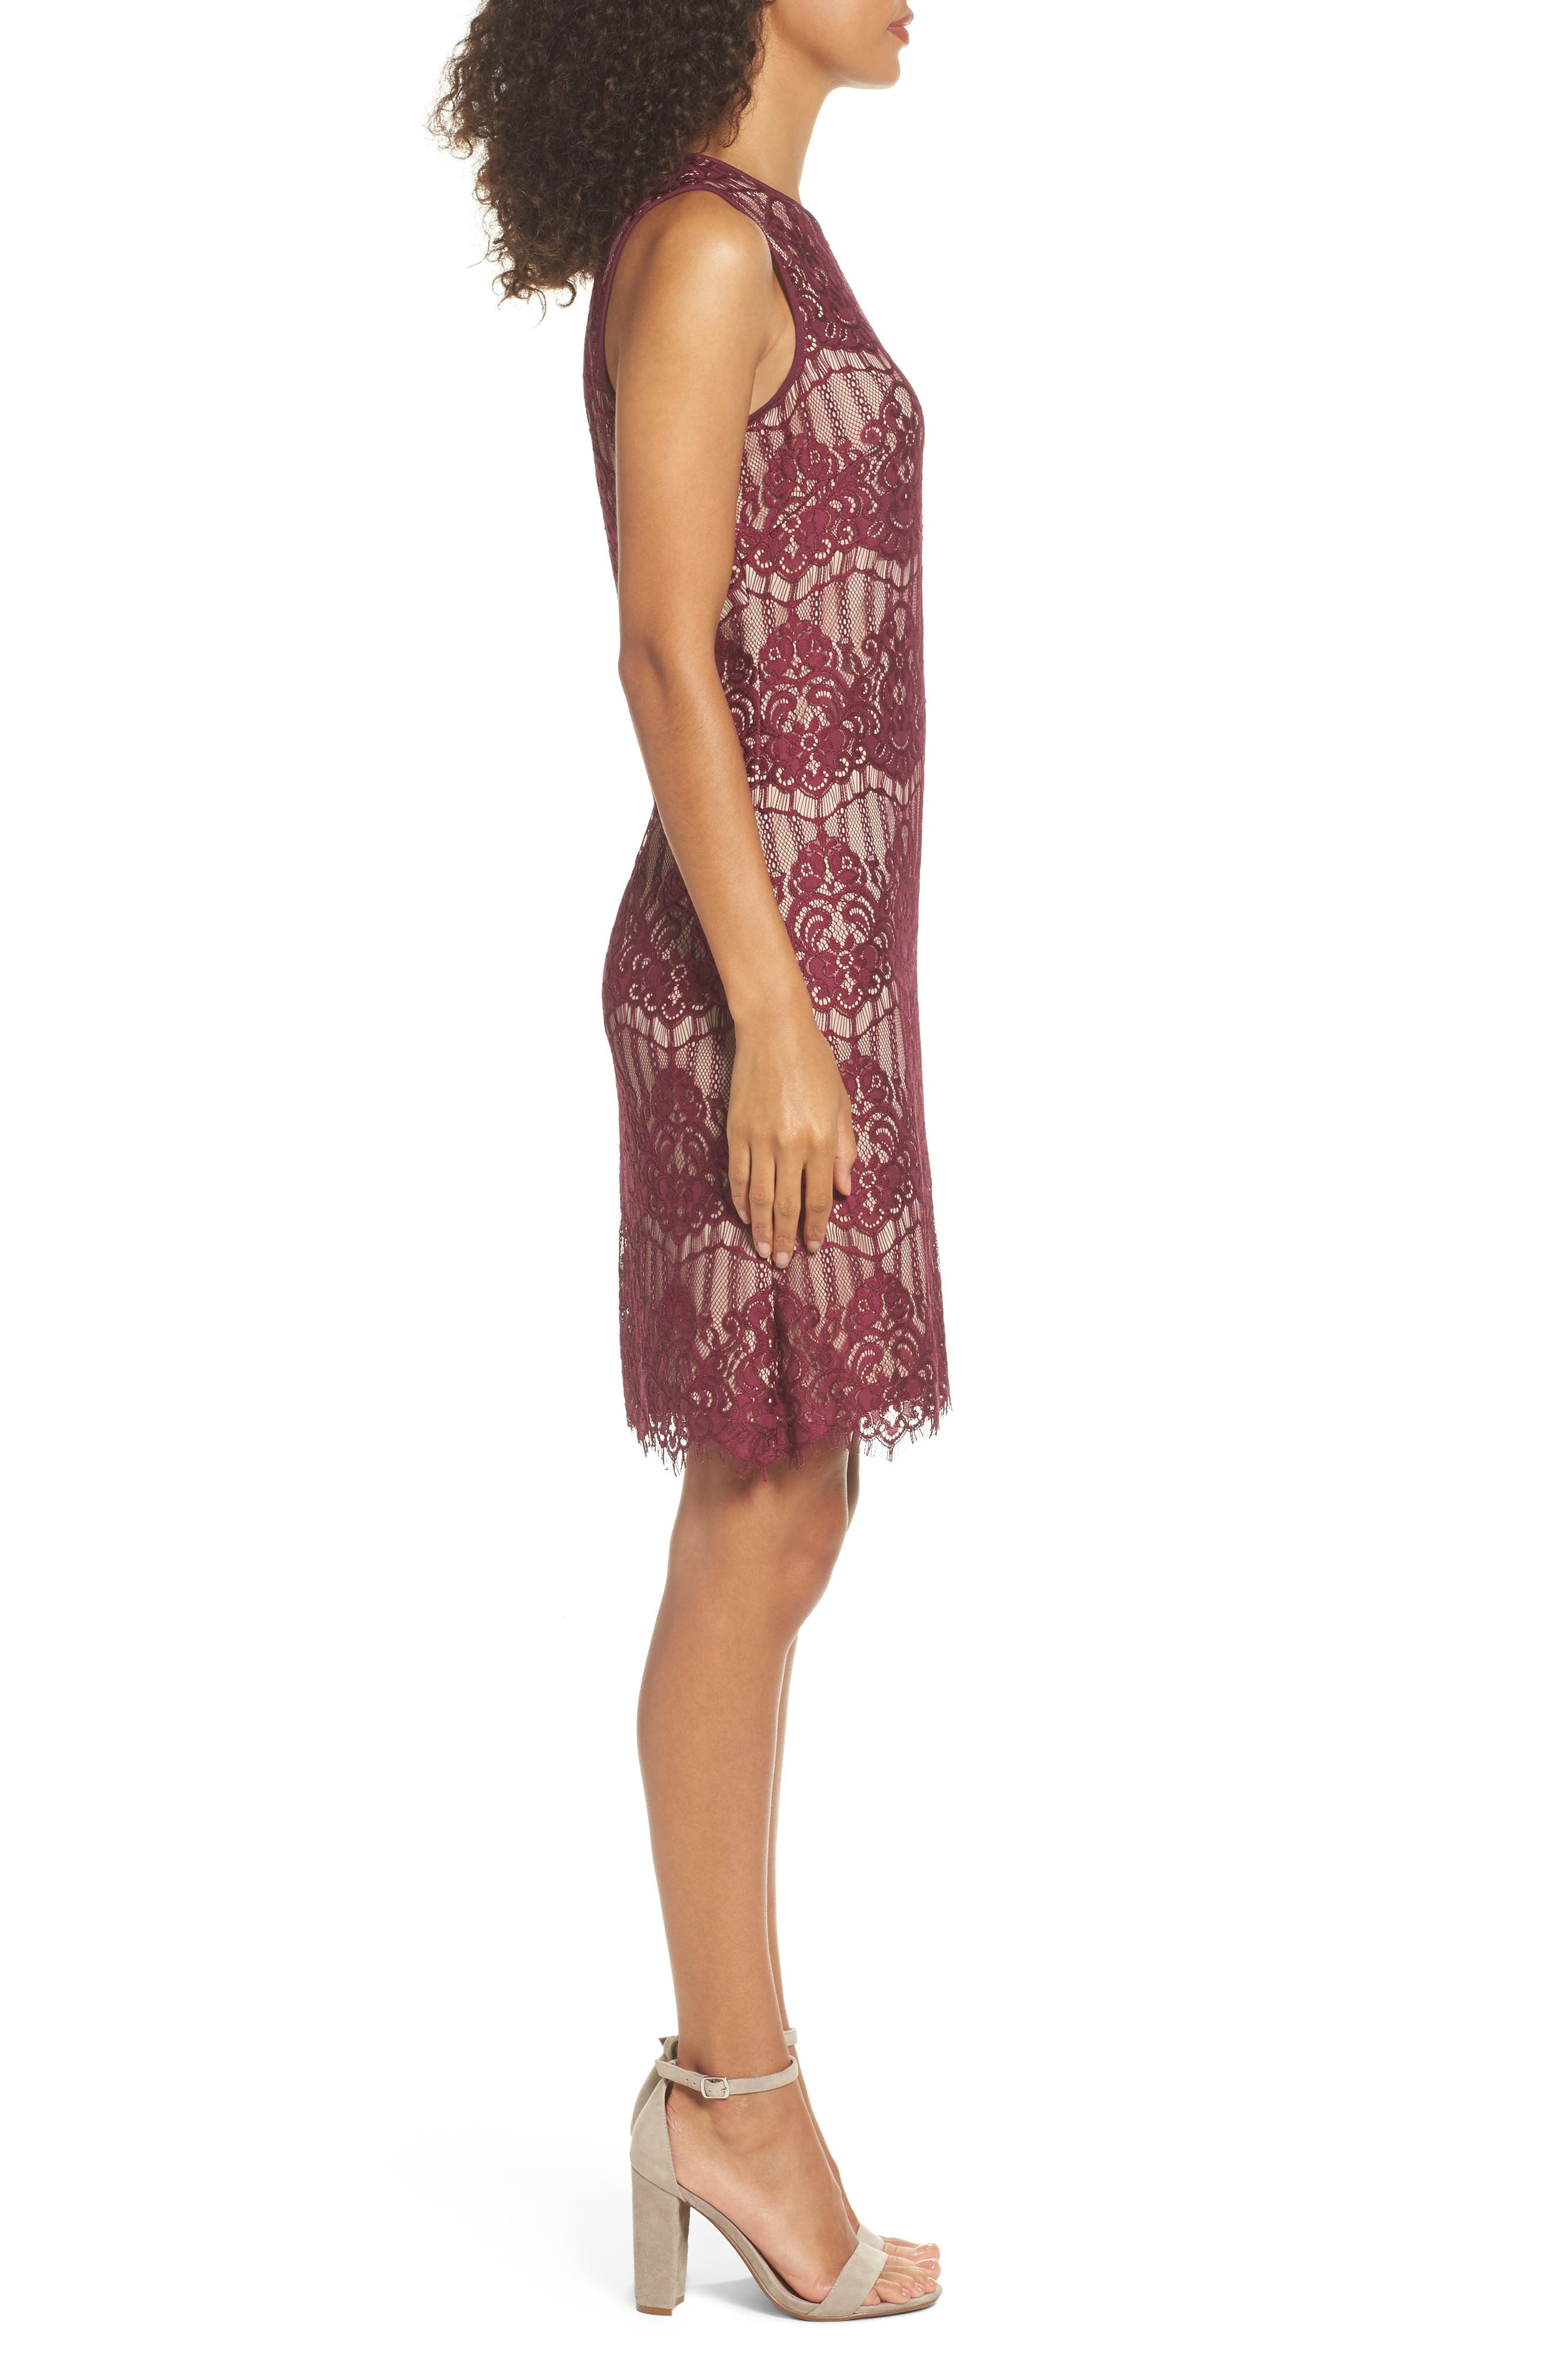 Scalloped Lace Sheath Dress,                             Alternate thumbnail 3, color,                             Burgundy